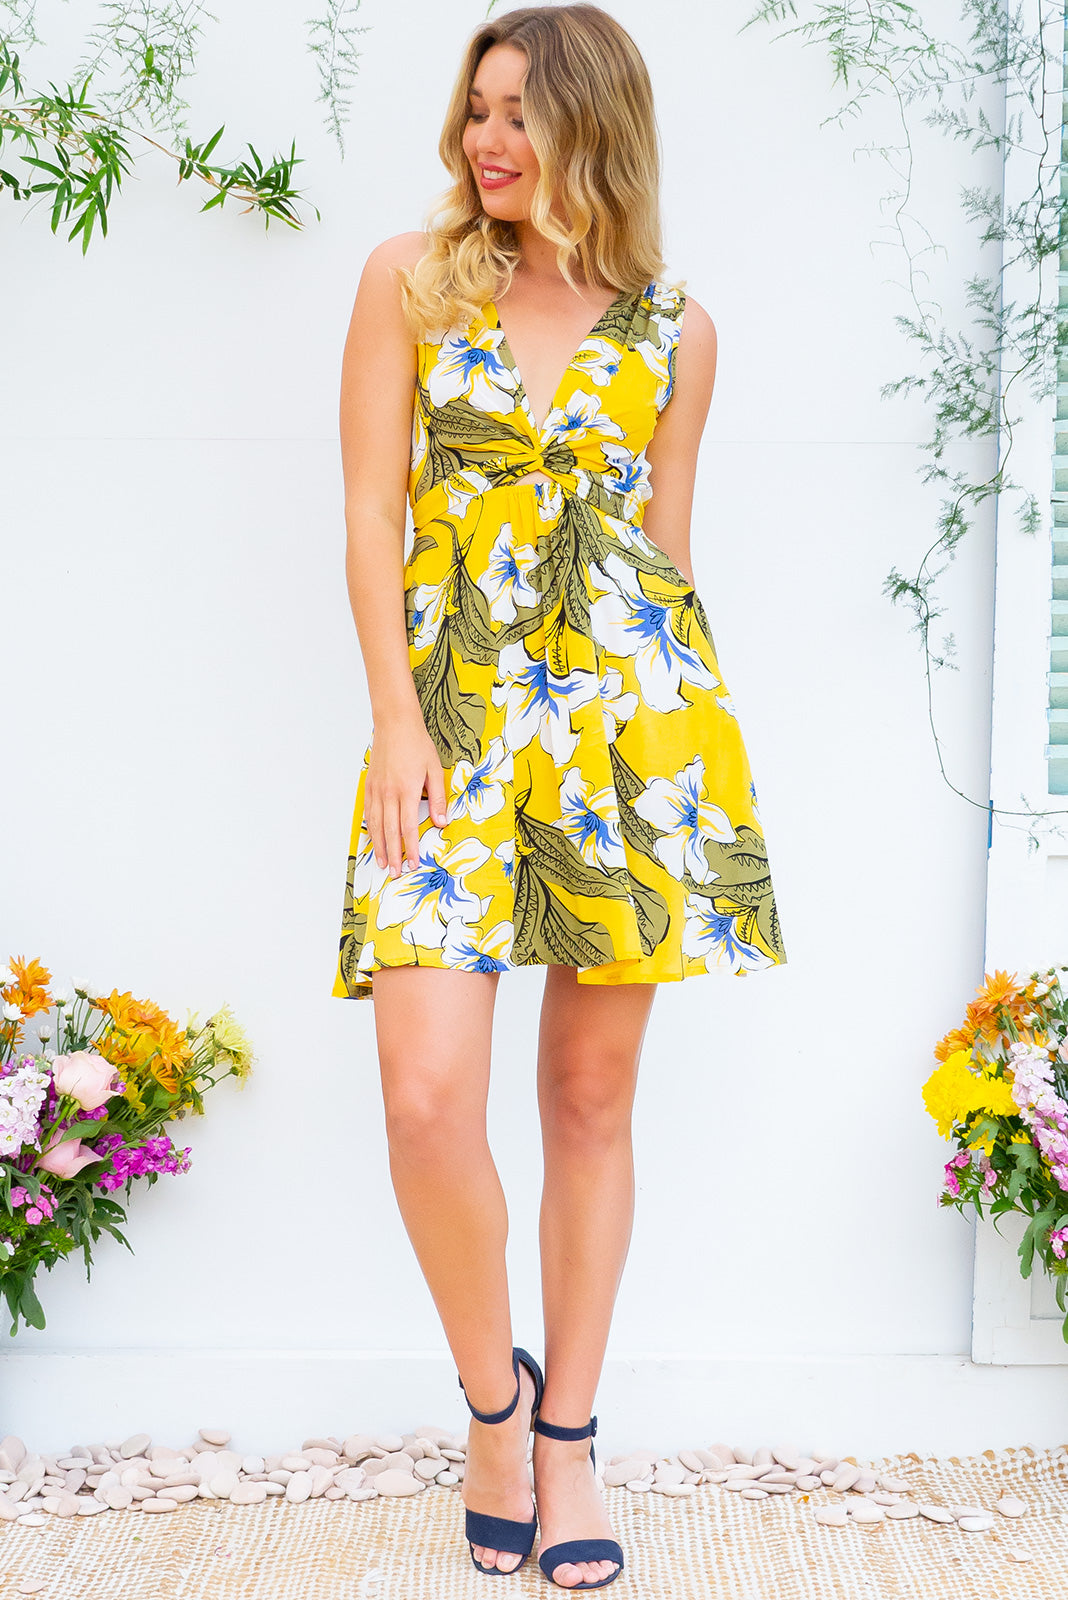 Little Darling Yellow Trumpet Wrap Dress tie front wrap dress with an elastic waist and a plunging v neckline made from a 100% rayon fabric in a yellow floral print